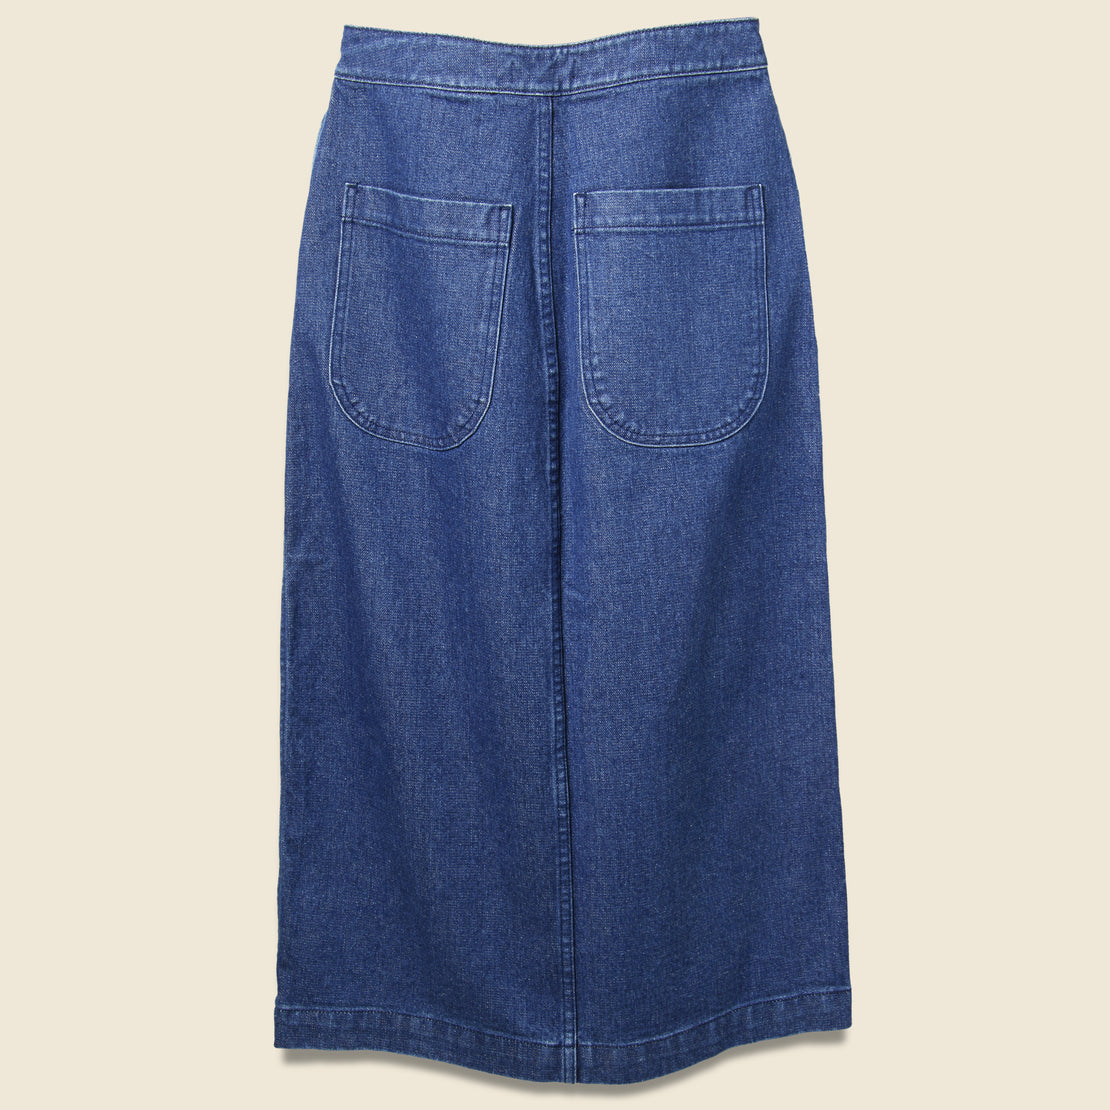 Lindsay Long Denim Skirt - Dark Blue